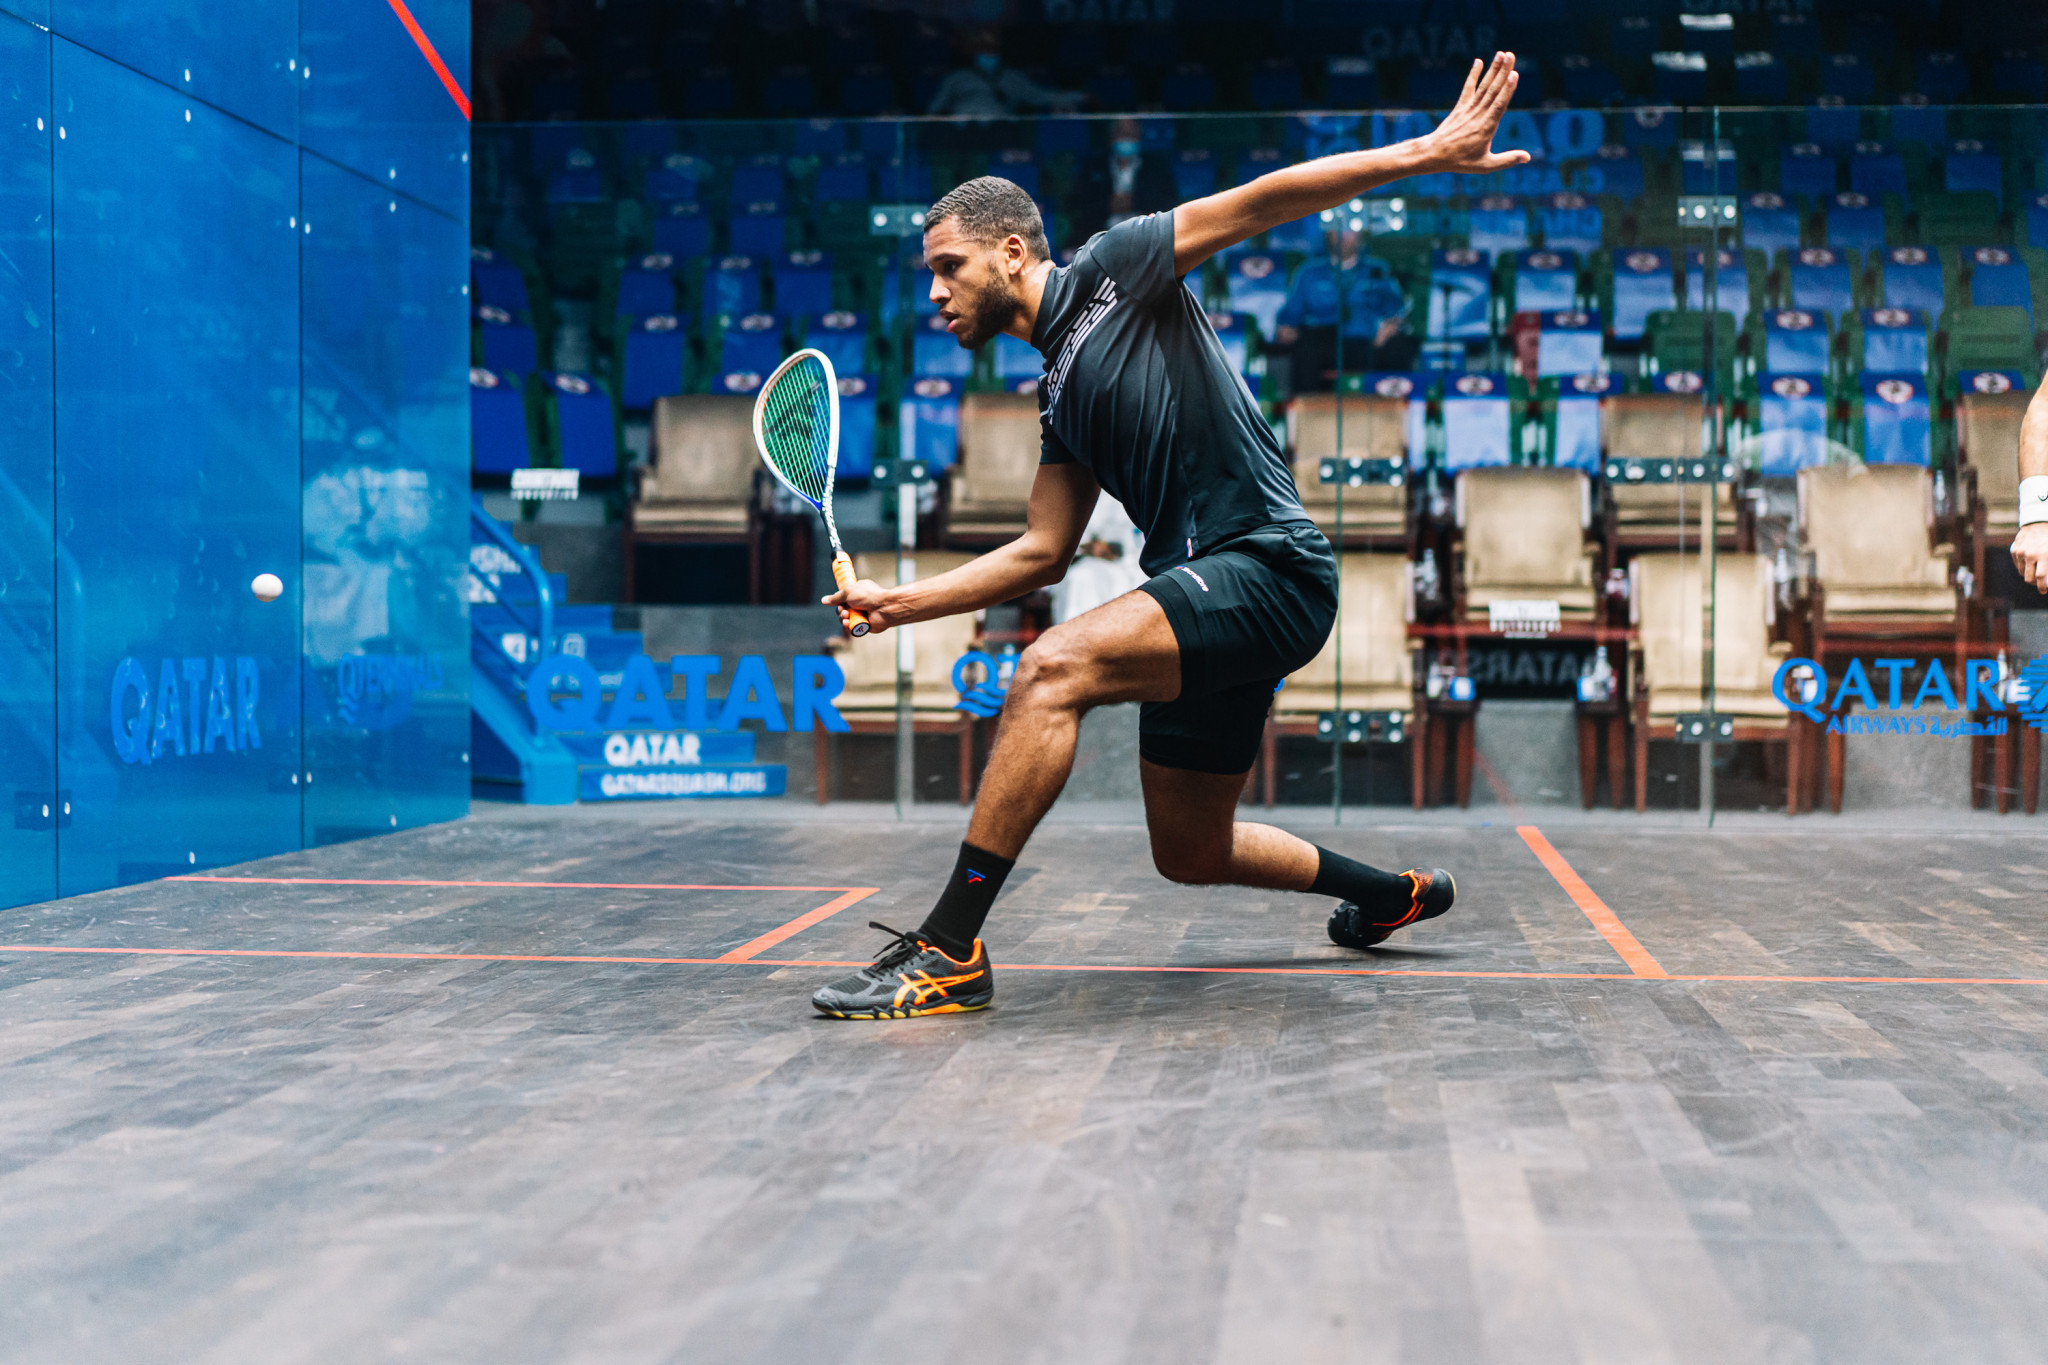 Fallows sets up clash with defending champion Farag at PSA Qatar Classic